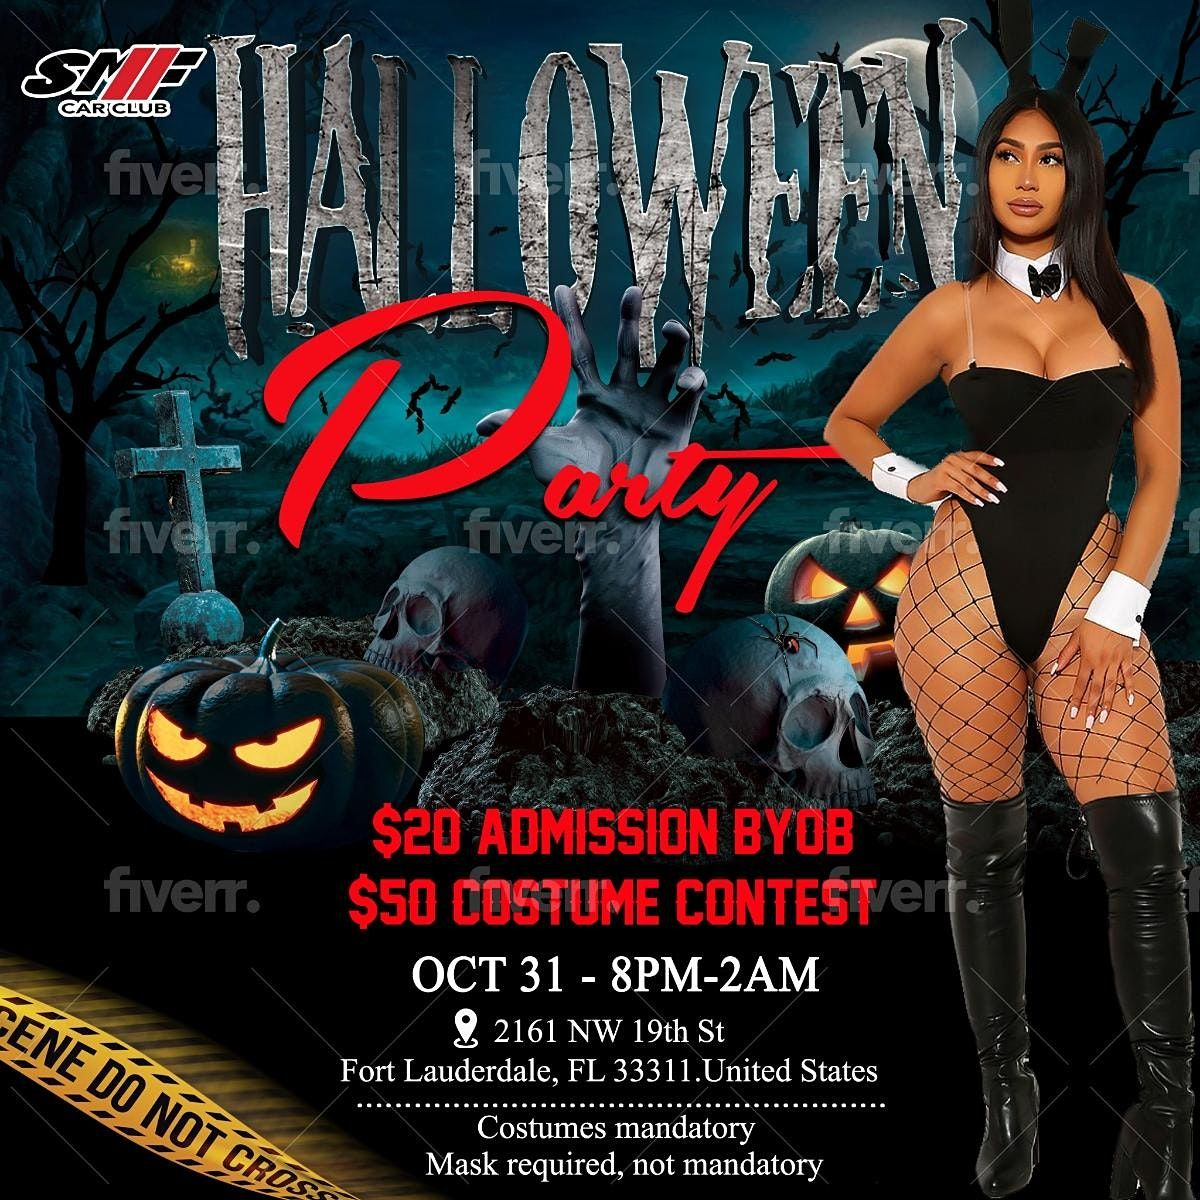 Halloween Ft Lauderdale 2020 2020 BIGGEST HALLOWEEN BASH, 2161 NW 19th St, Fort Lauderdale, 31